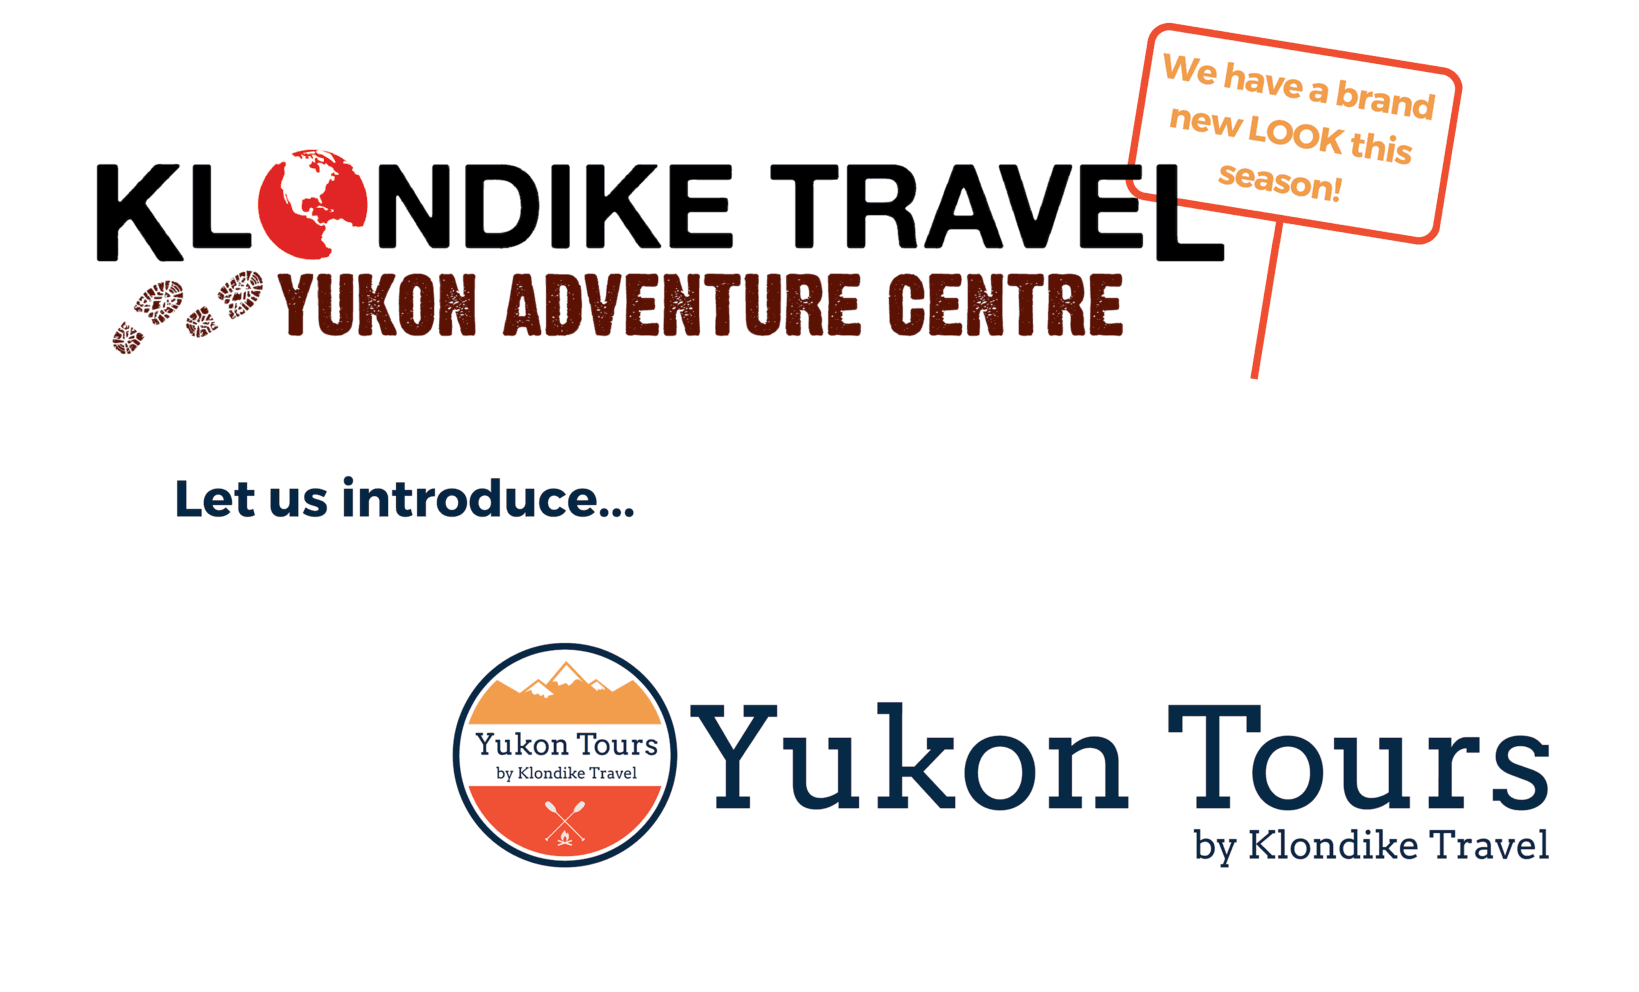 Yukon Adventure Centre has a NEW Look!